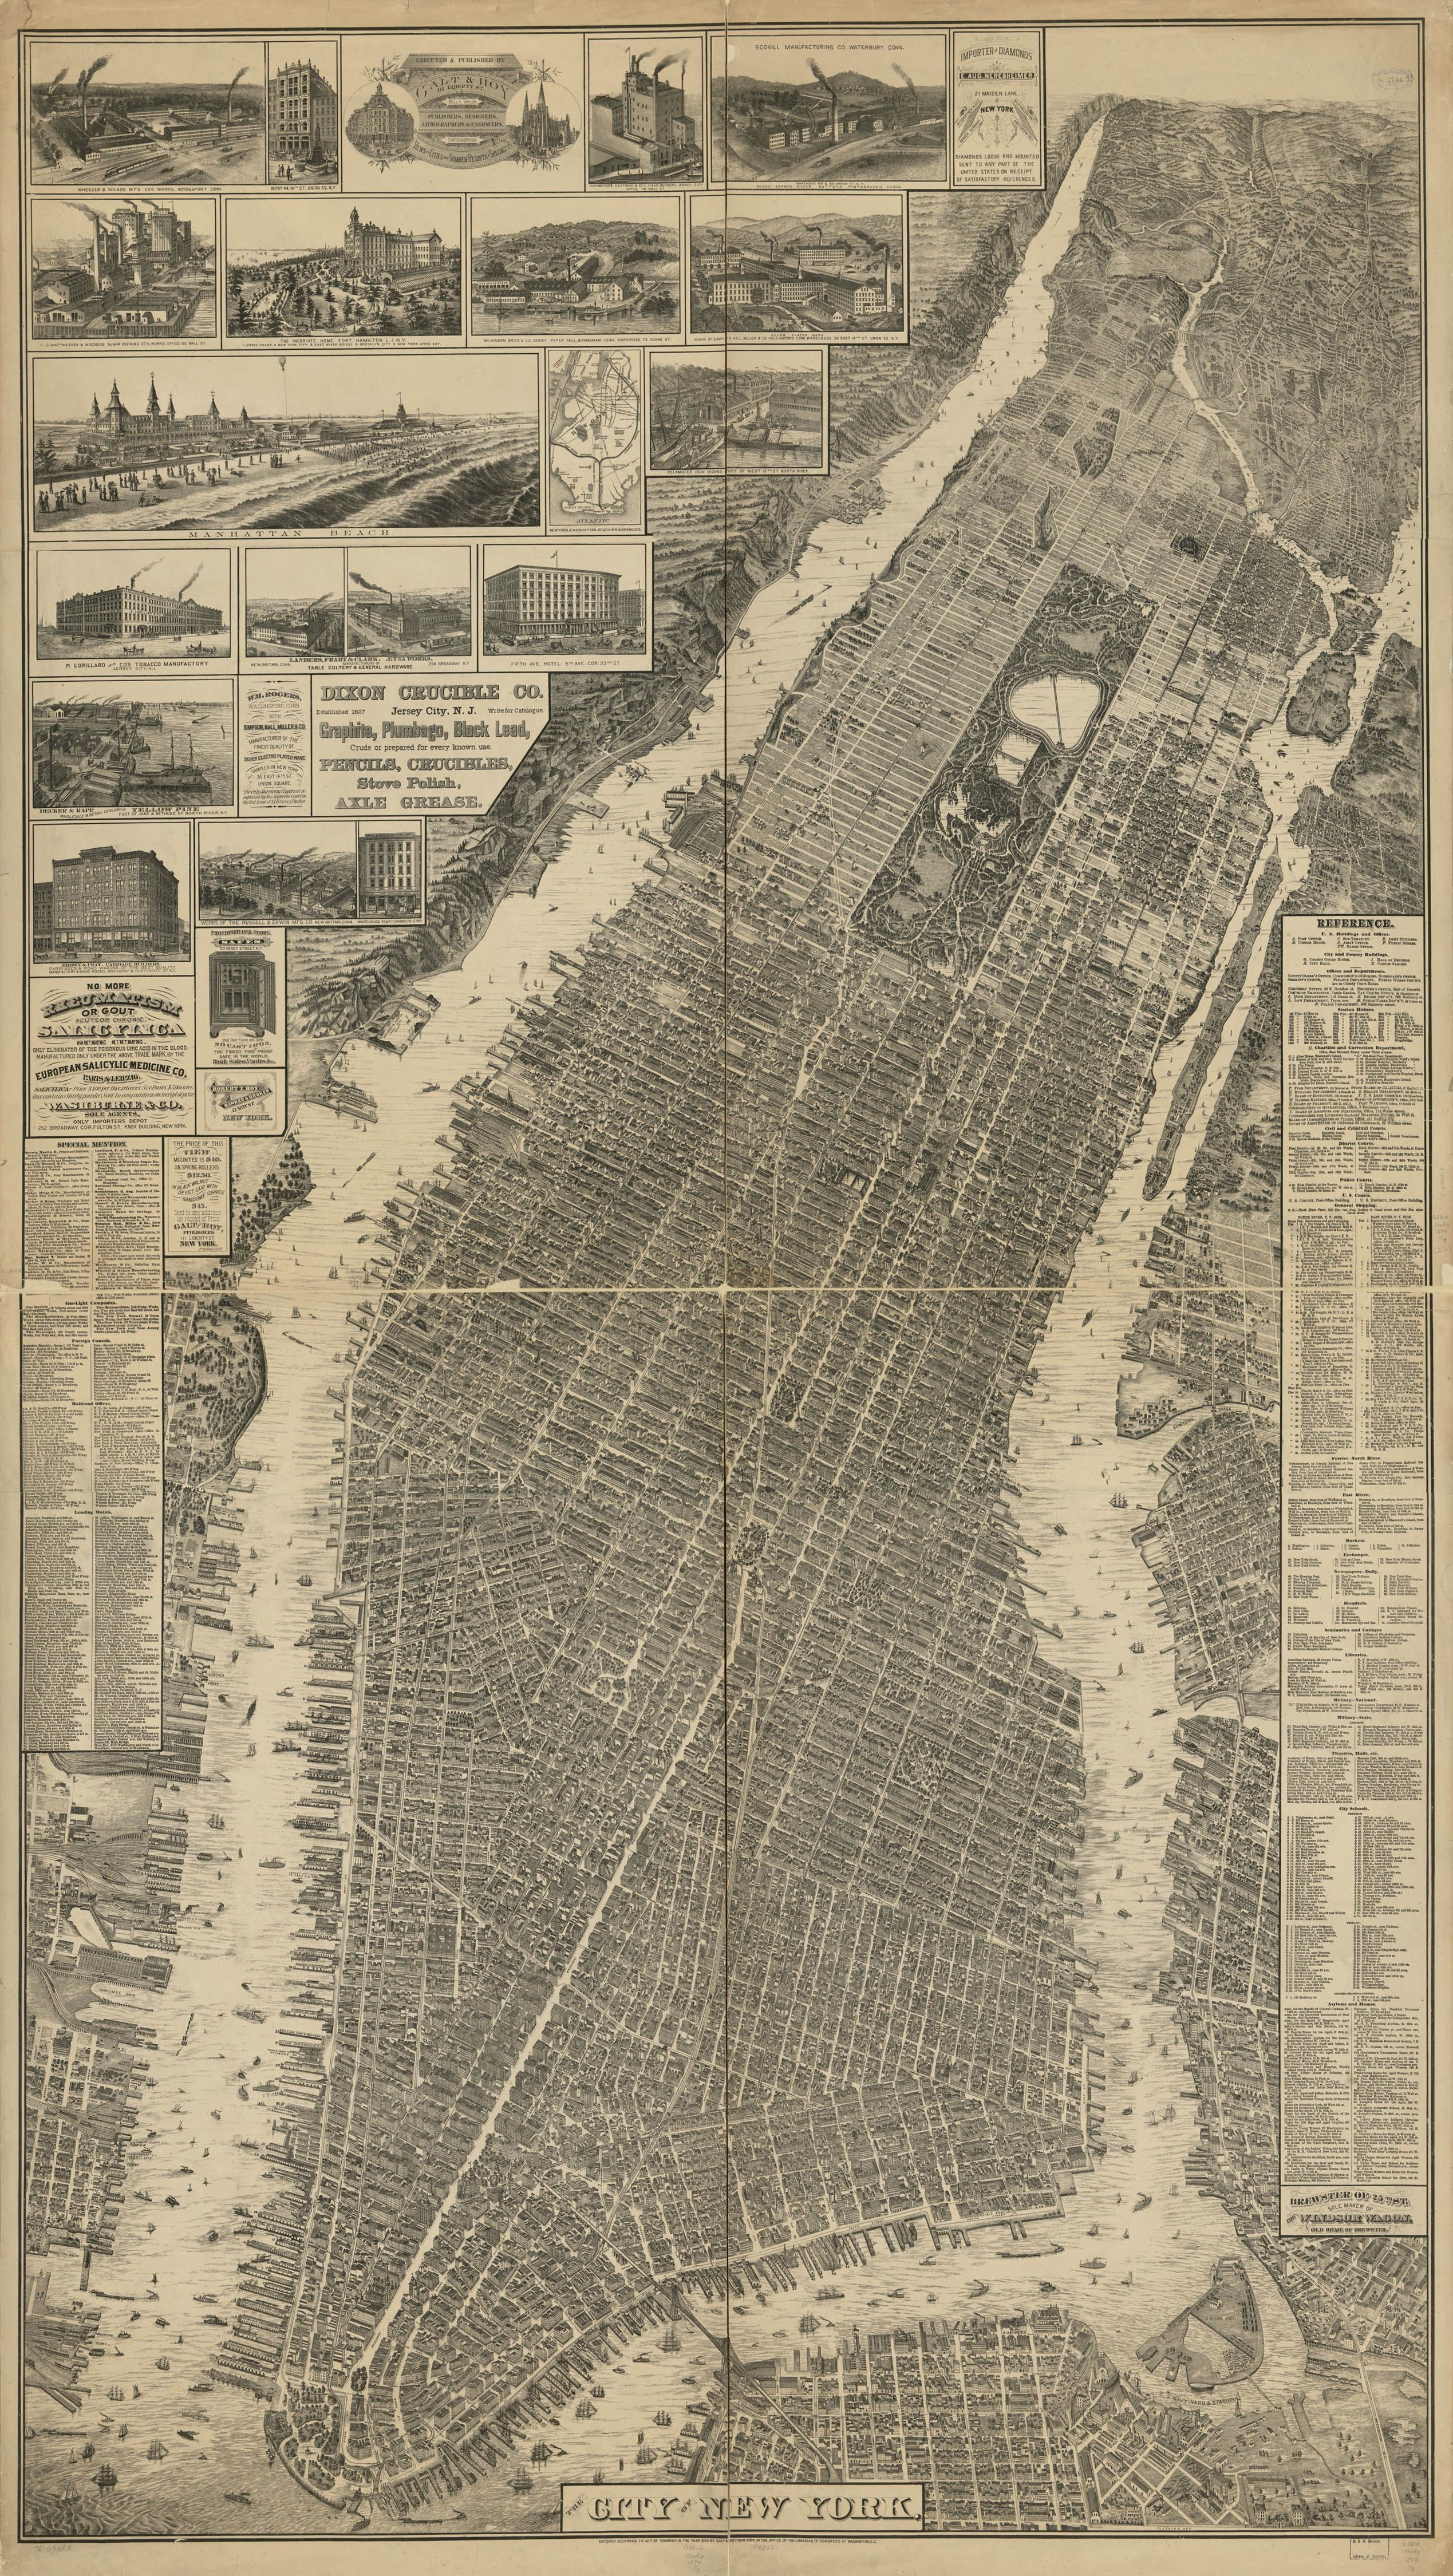 This remarkable map a birdseye perspective view of New York